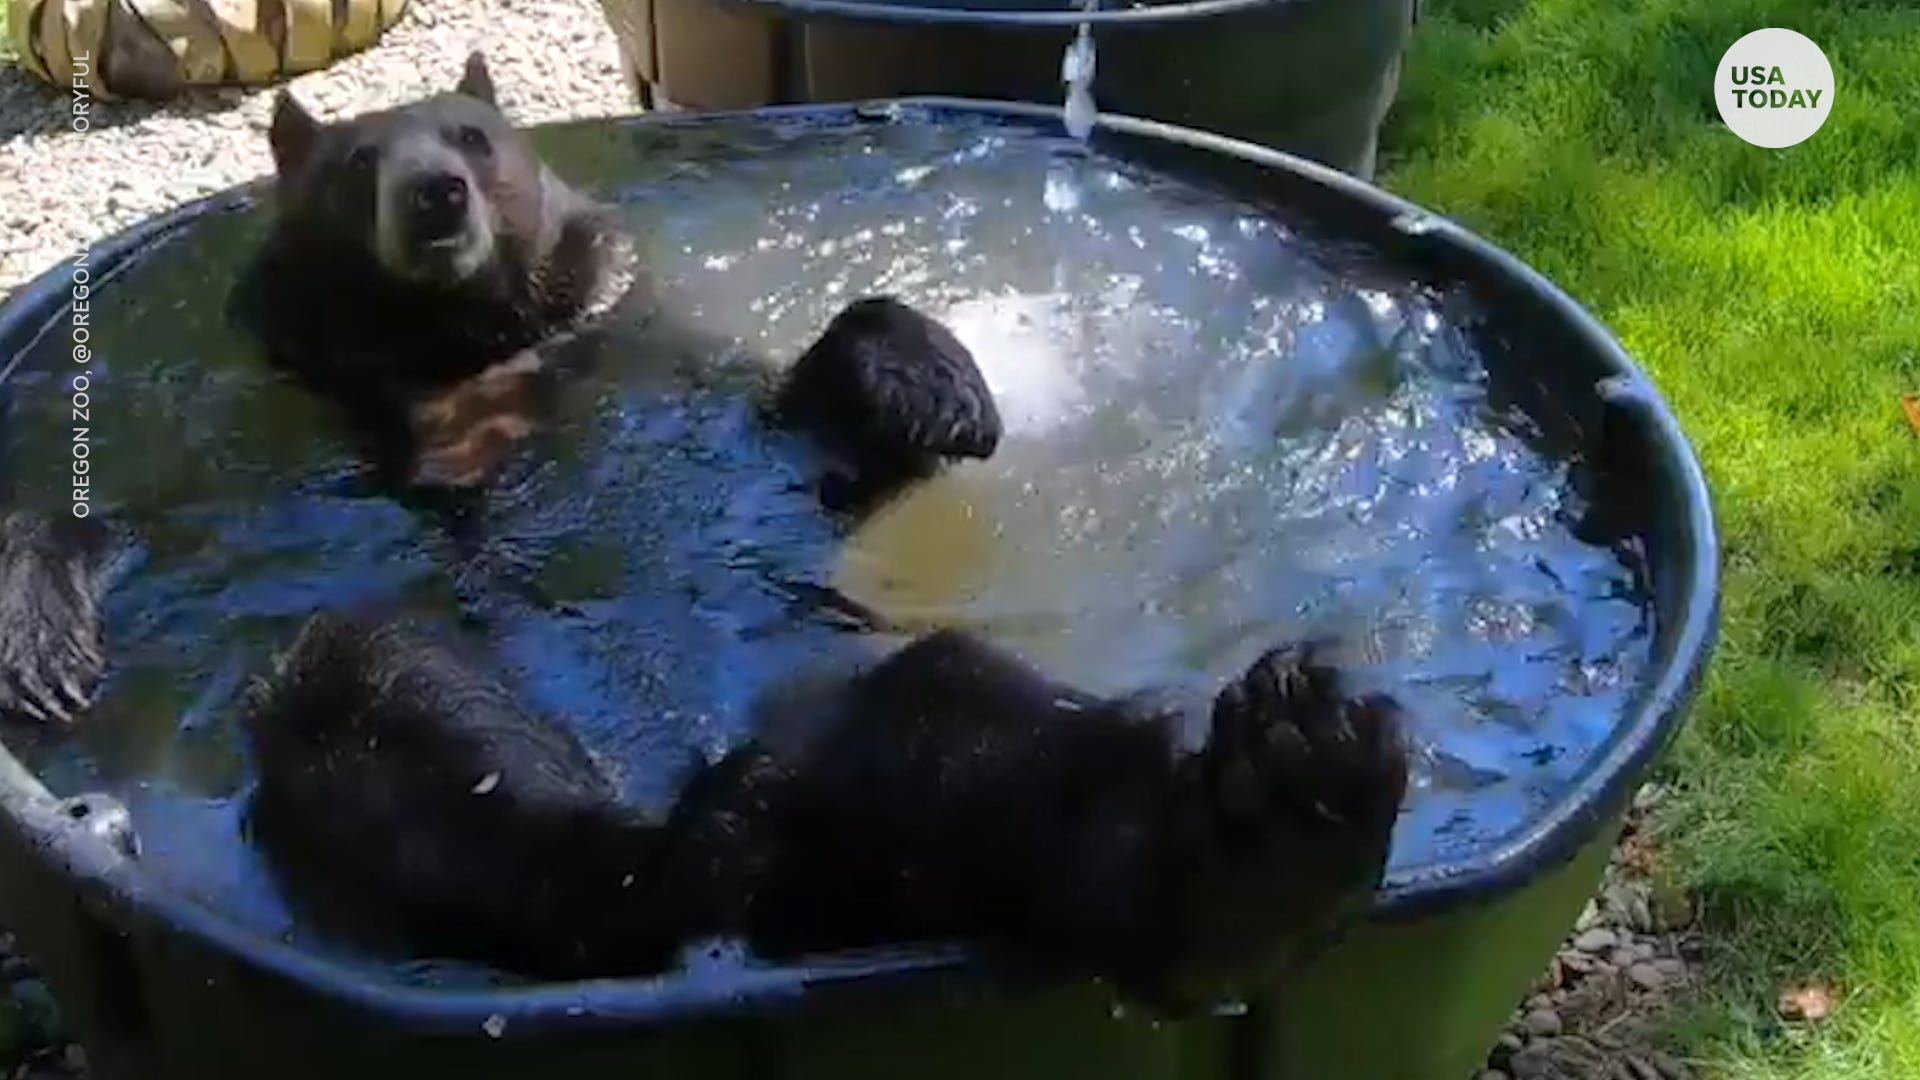 This 400-pound black bear had a fun day at the Oregon Zoo playing in a wading pool